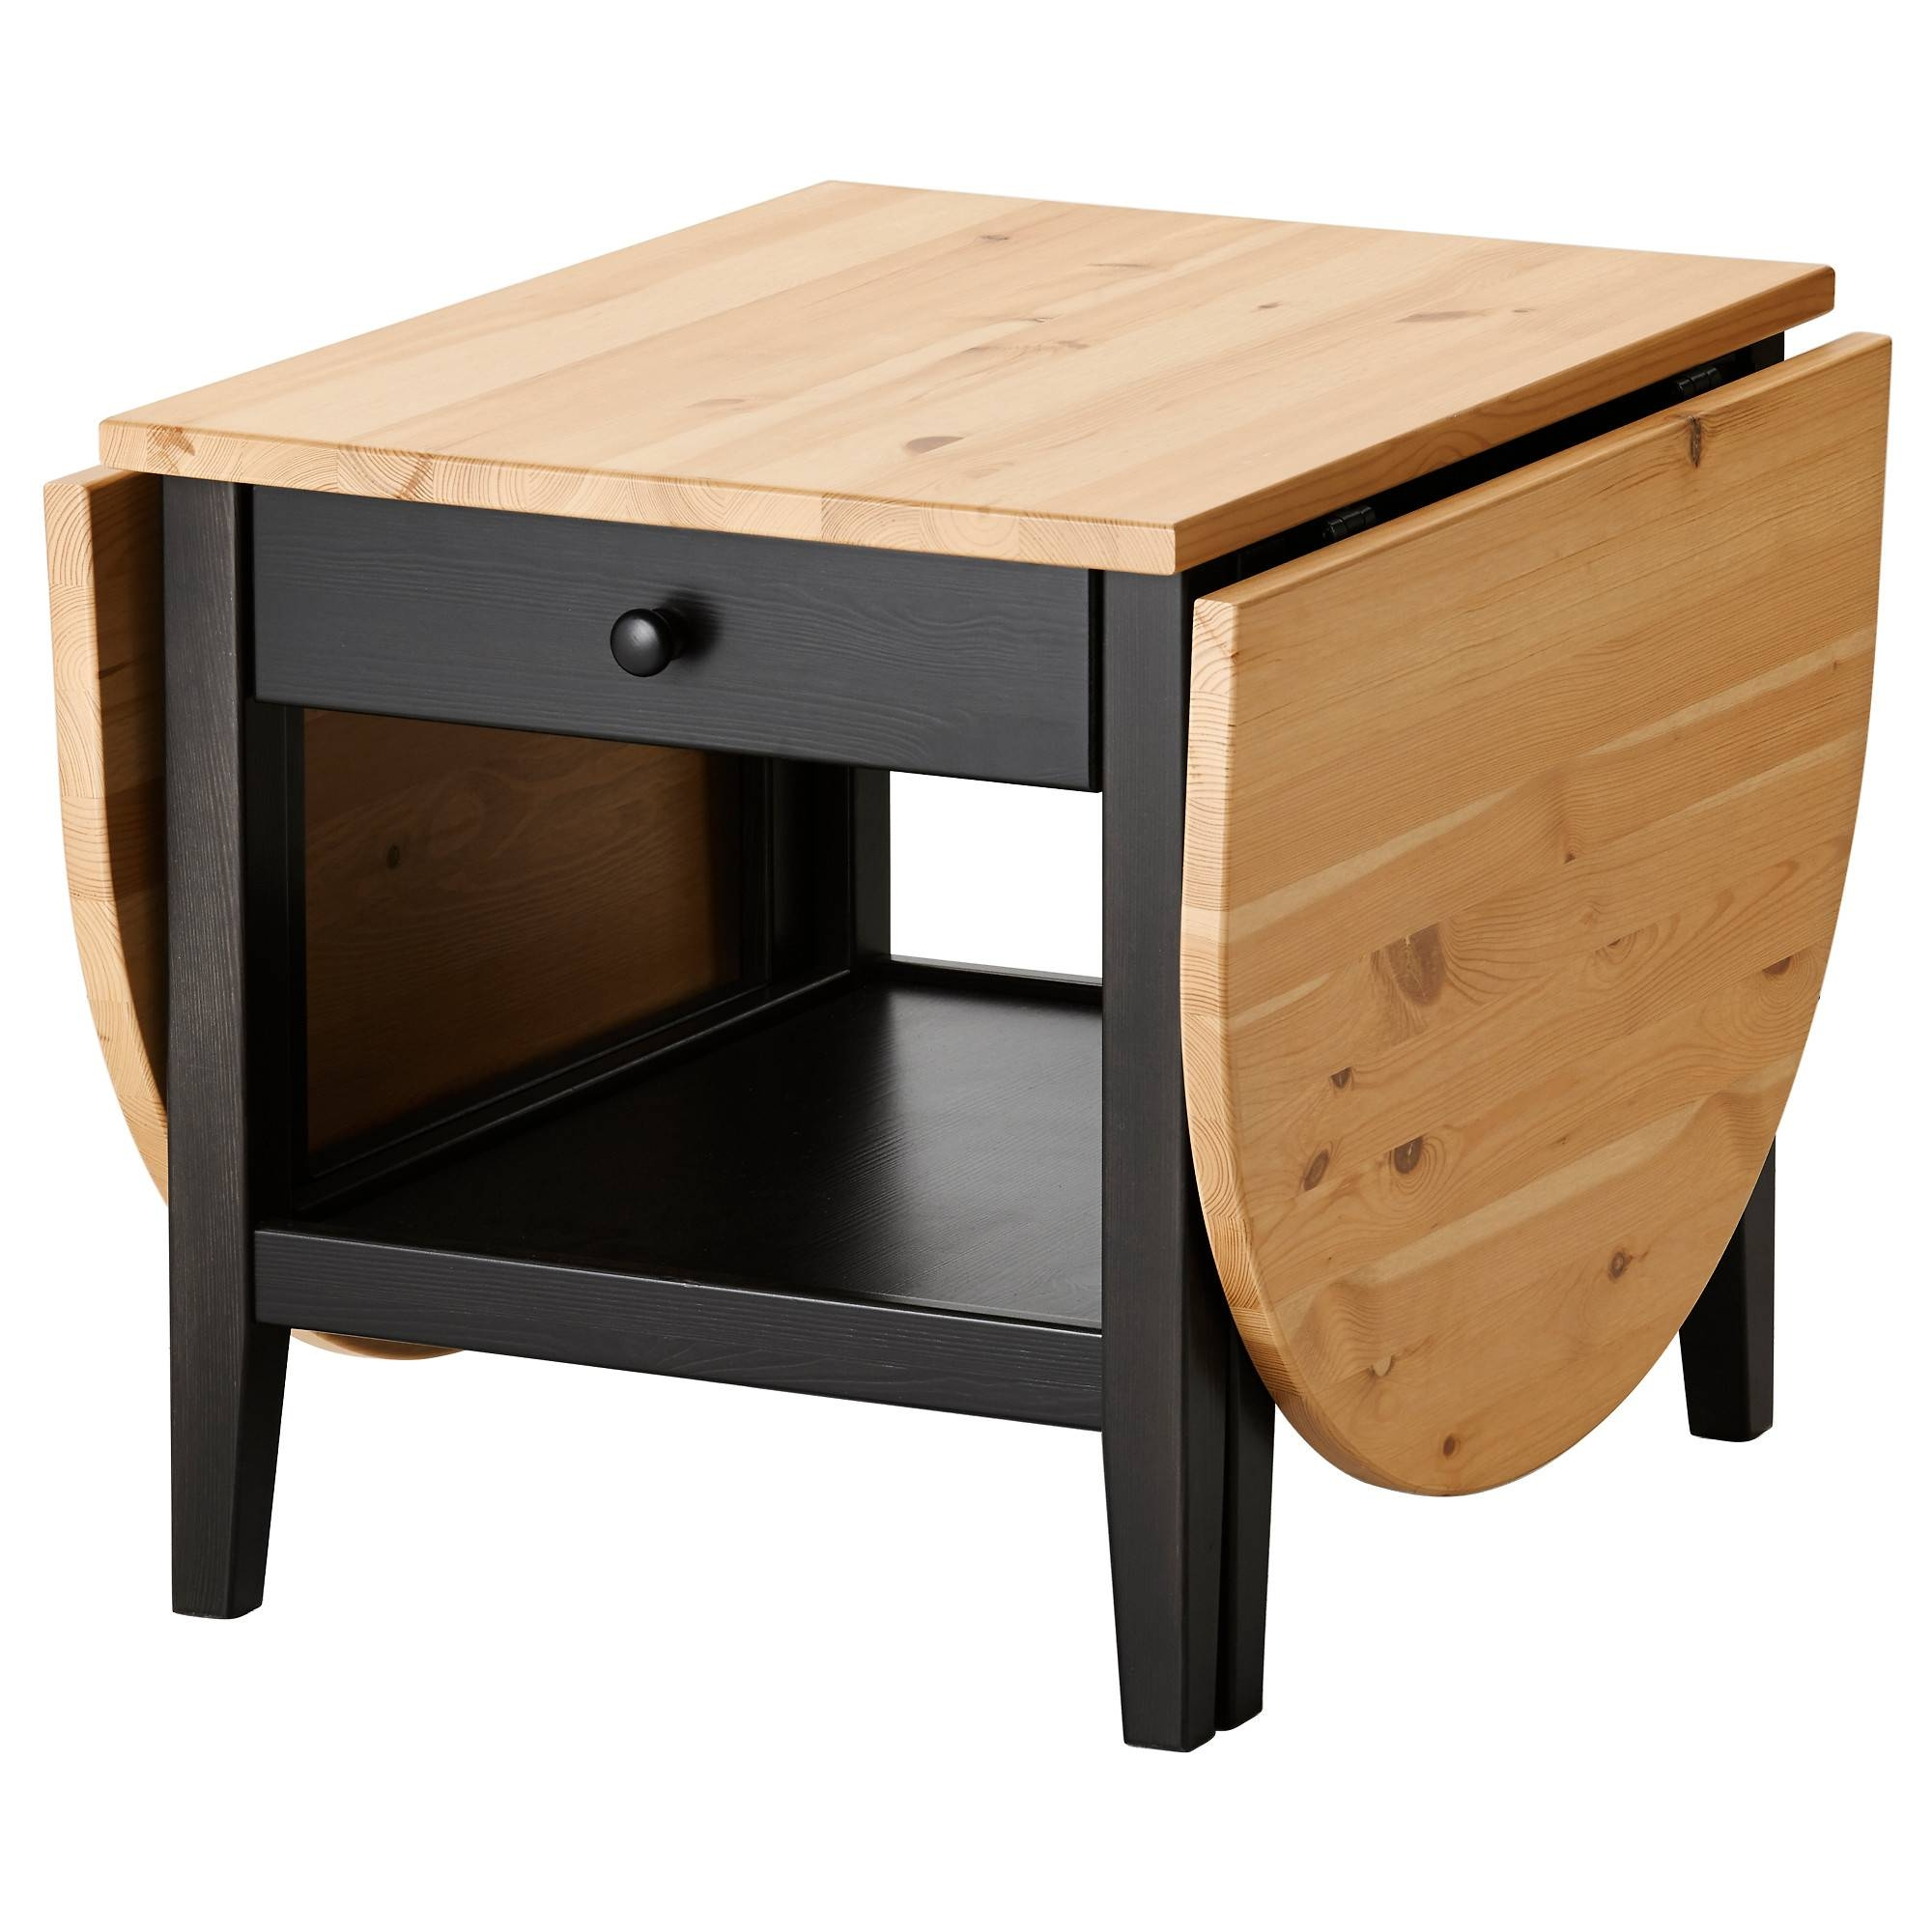 Coffee Table: Surprising Small Black Coffee Table Designs Coffee With Small Coffee Tables With Shelf (View 16 of 30)